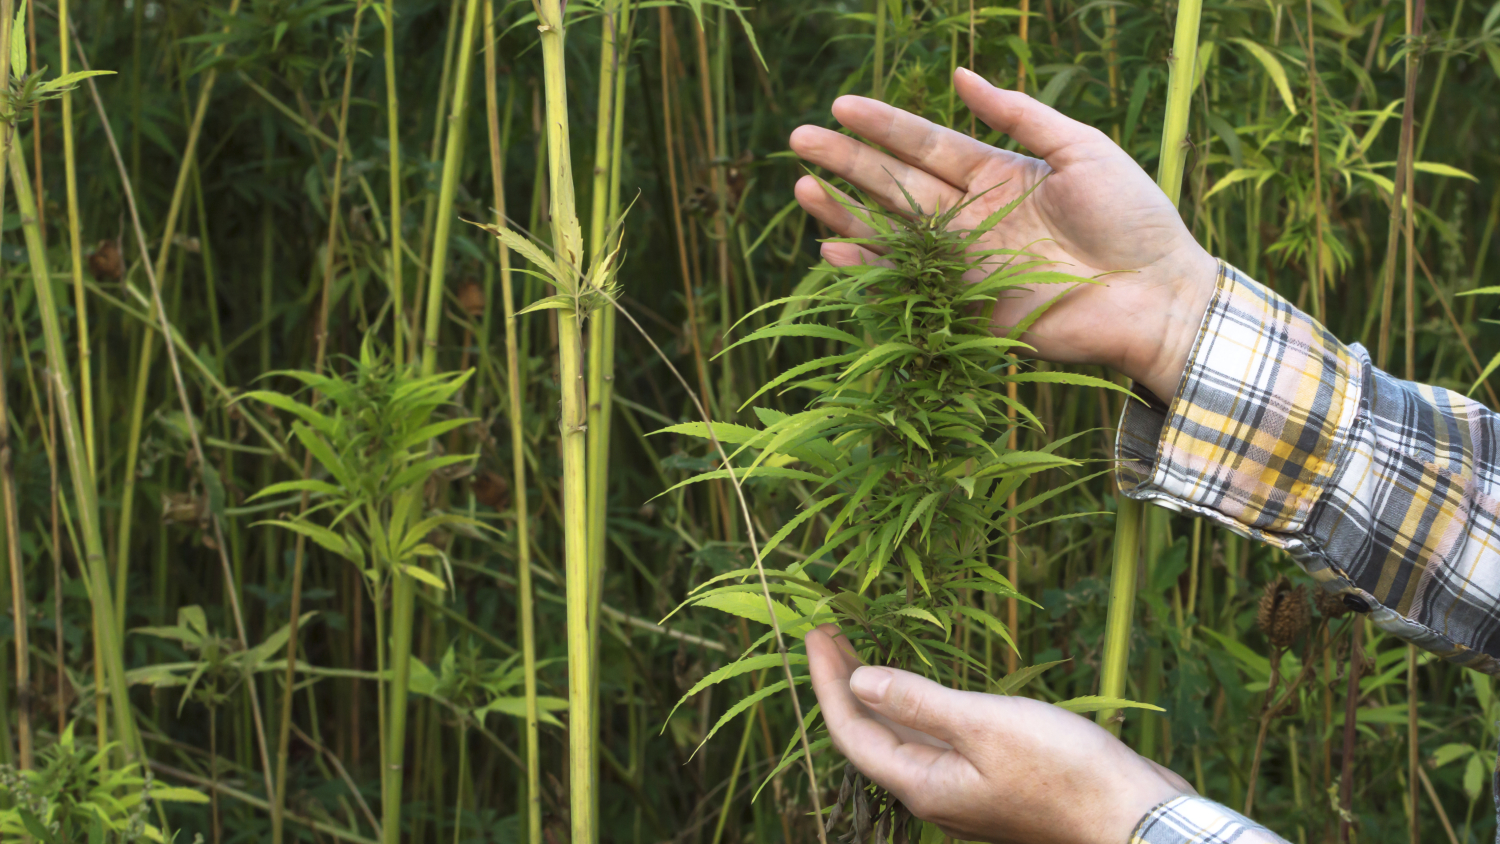 This year, North Carolina will have its first hemp crop in decades, and NC State research and extension work will help shape the crop's future here.